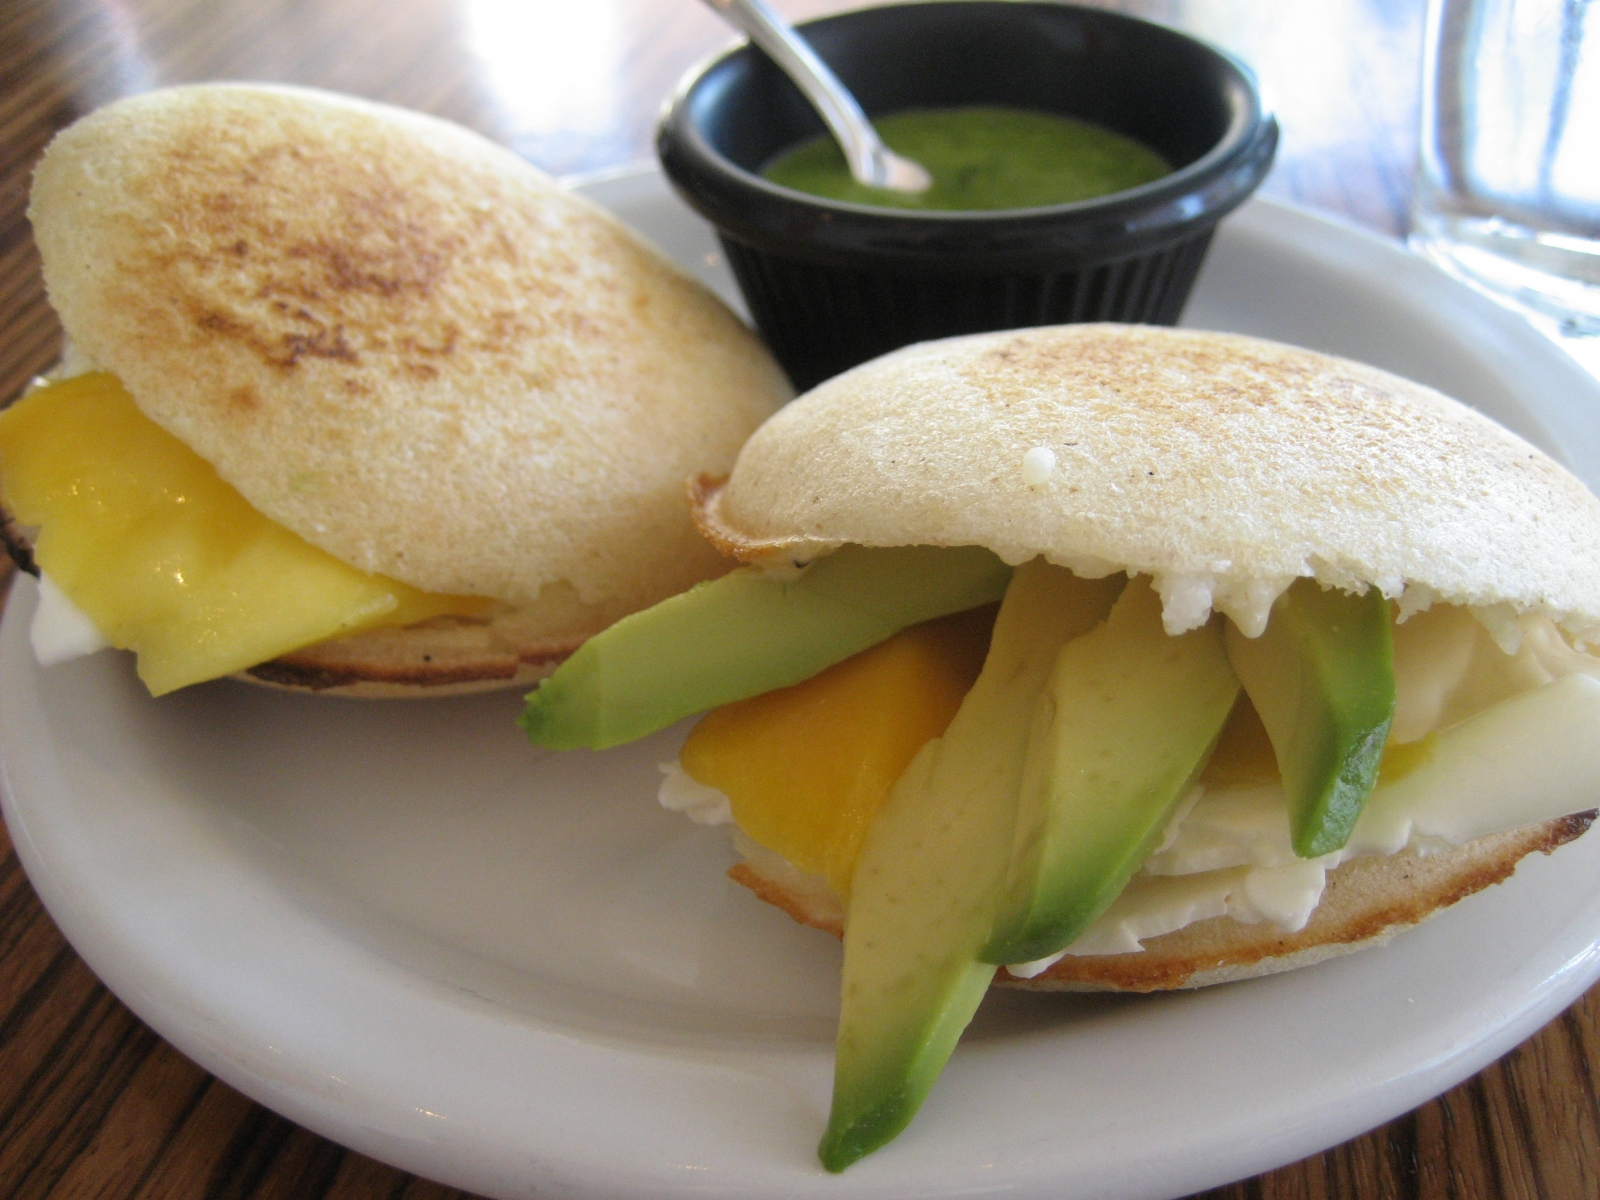 arepa is a national food of venezuela 26 traditional venezuelan foods that will make you go slurp posted on july 22, 2016 venezuelan cuisine is a culmination of diverse cuisines and owes its variety to a plethora of influences including west african, native american, italian, spanish, portuguese and french.